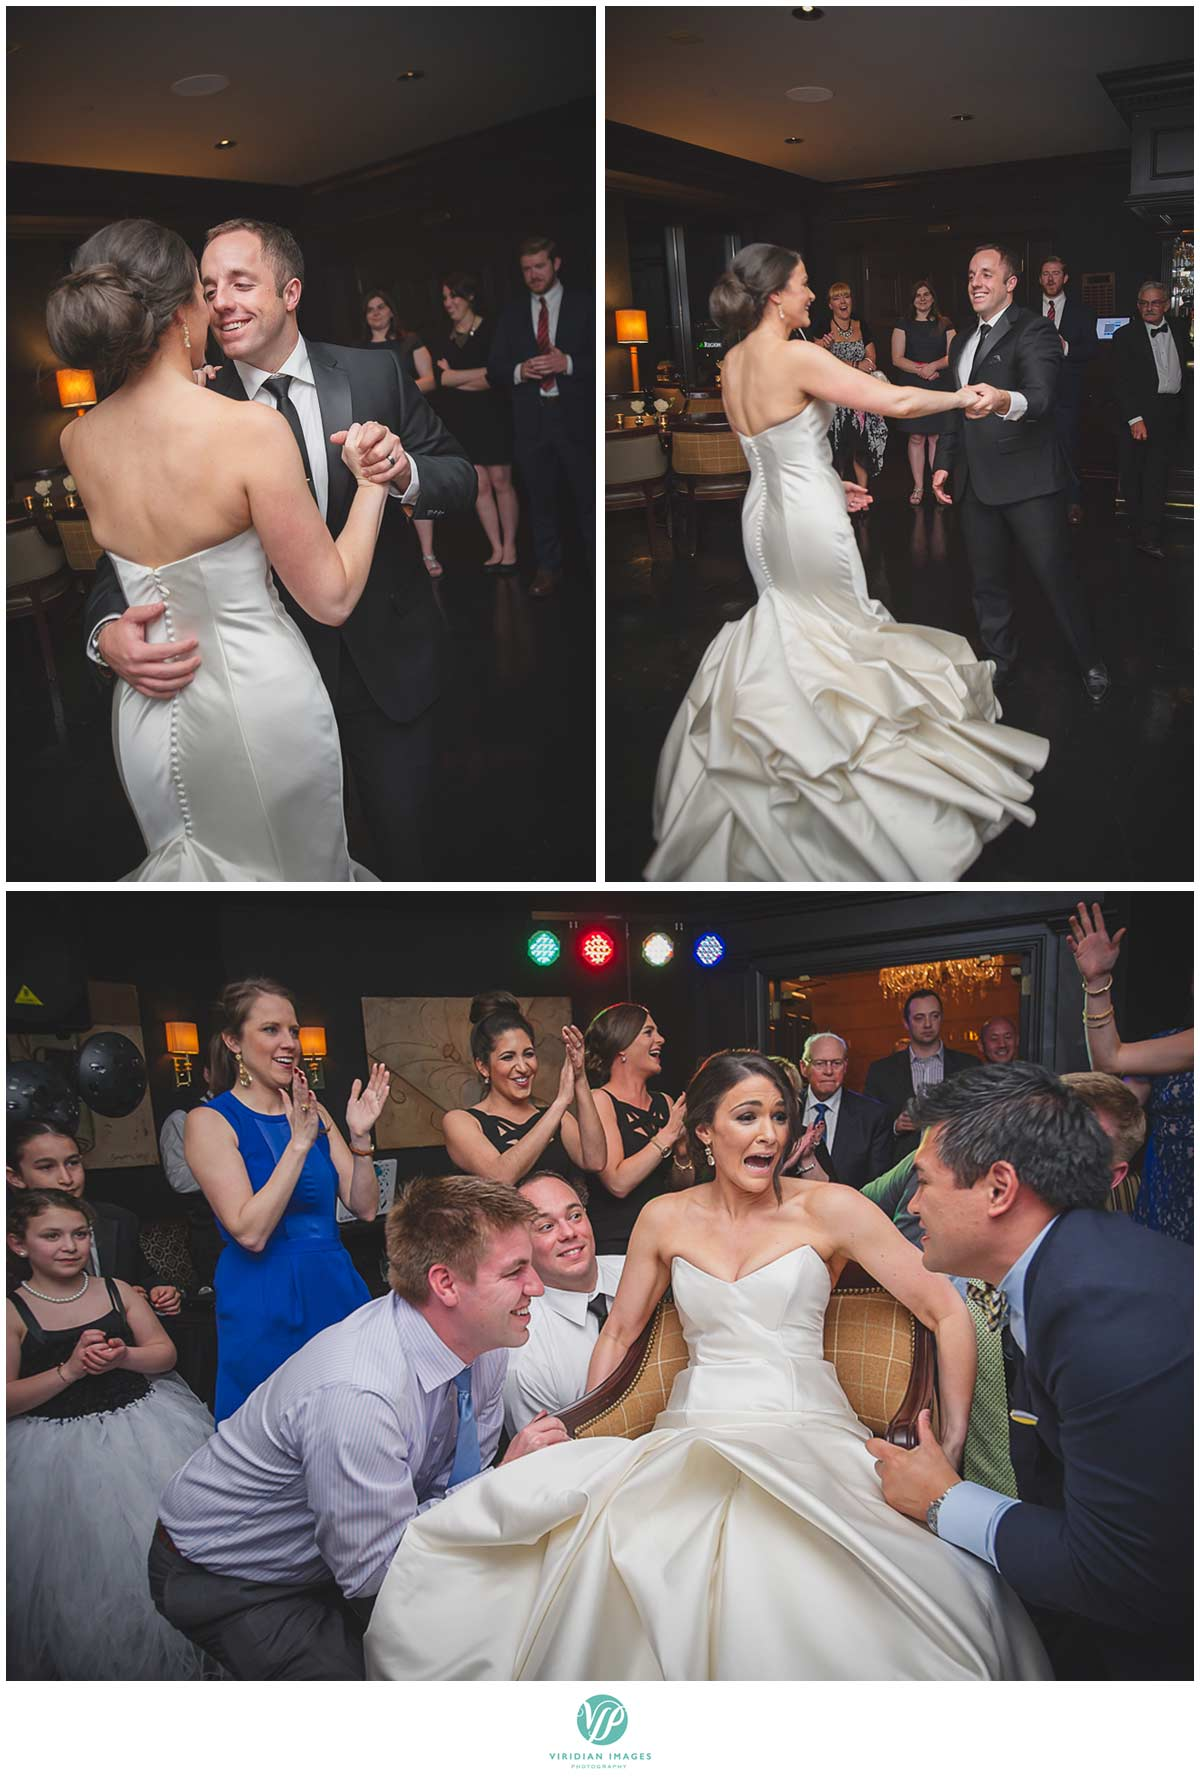 Peachtree_Club_Atlanta_Wedding_Viridian_Images_Photography-34